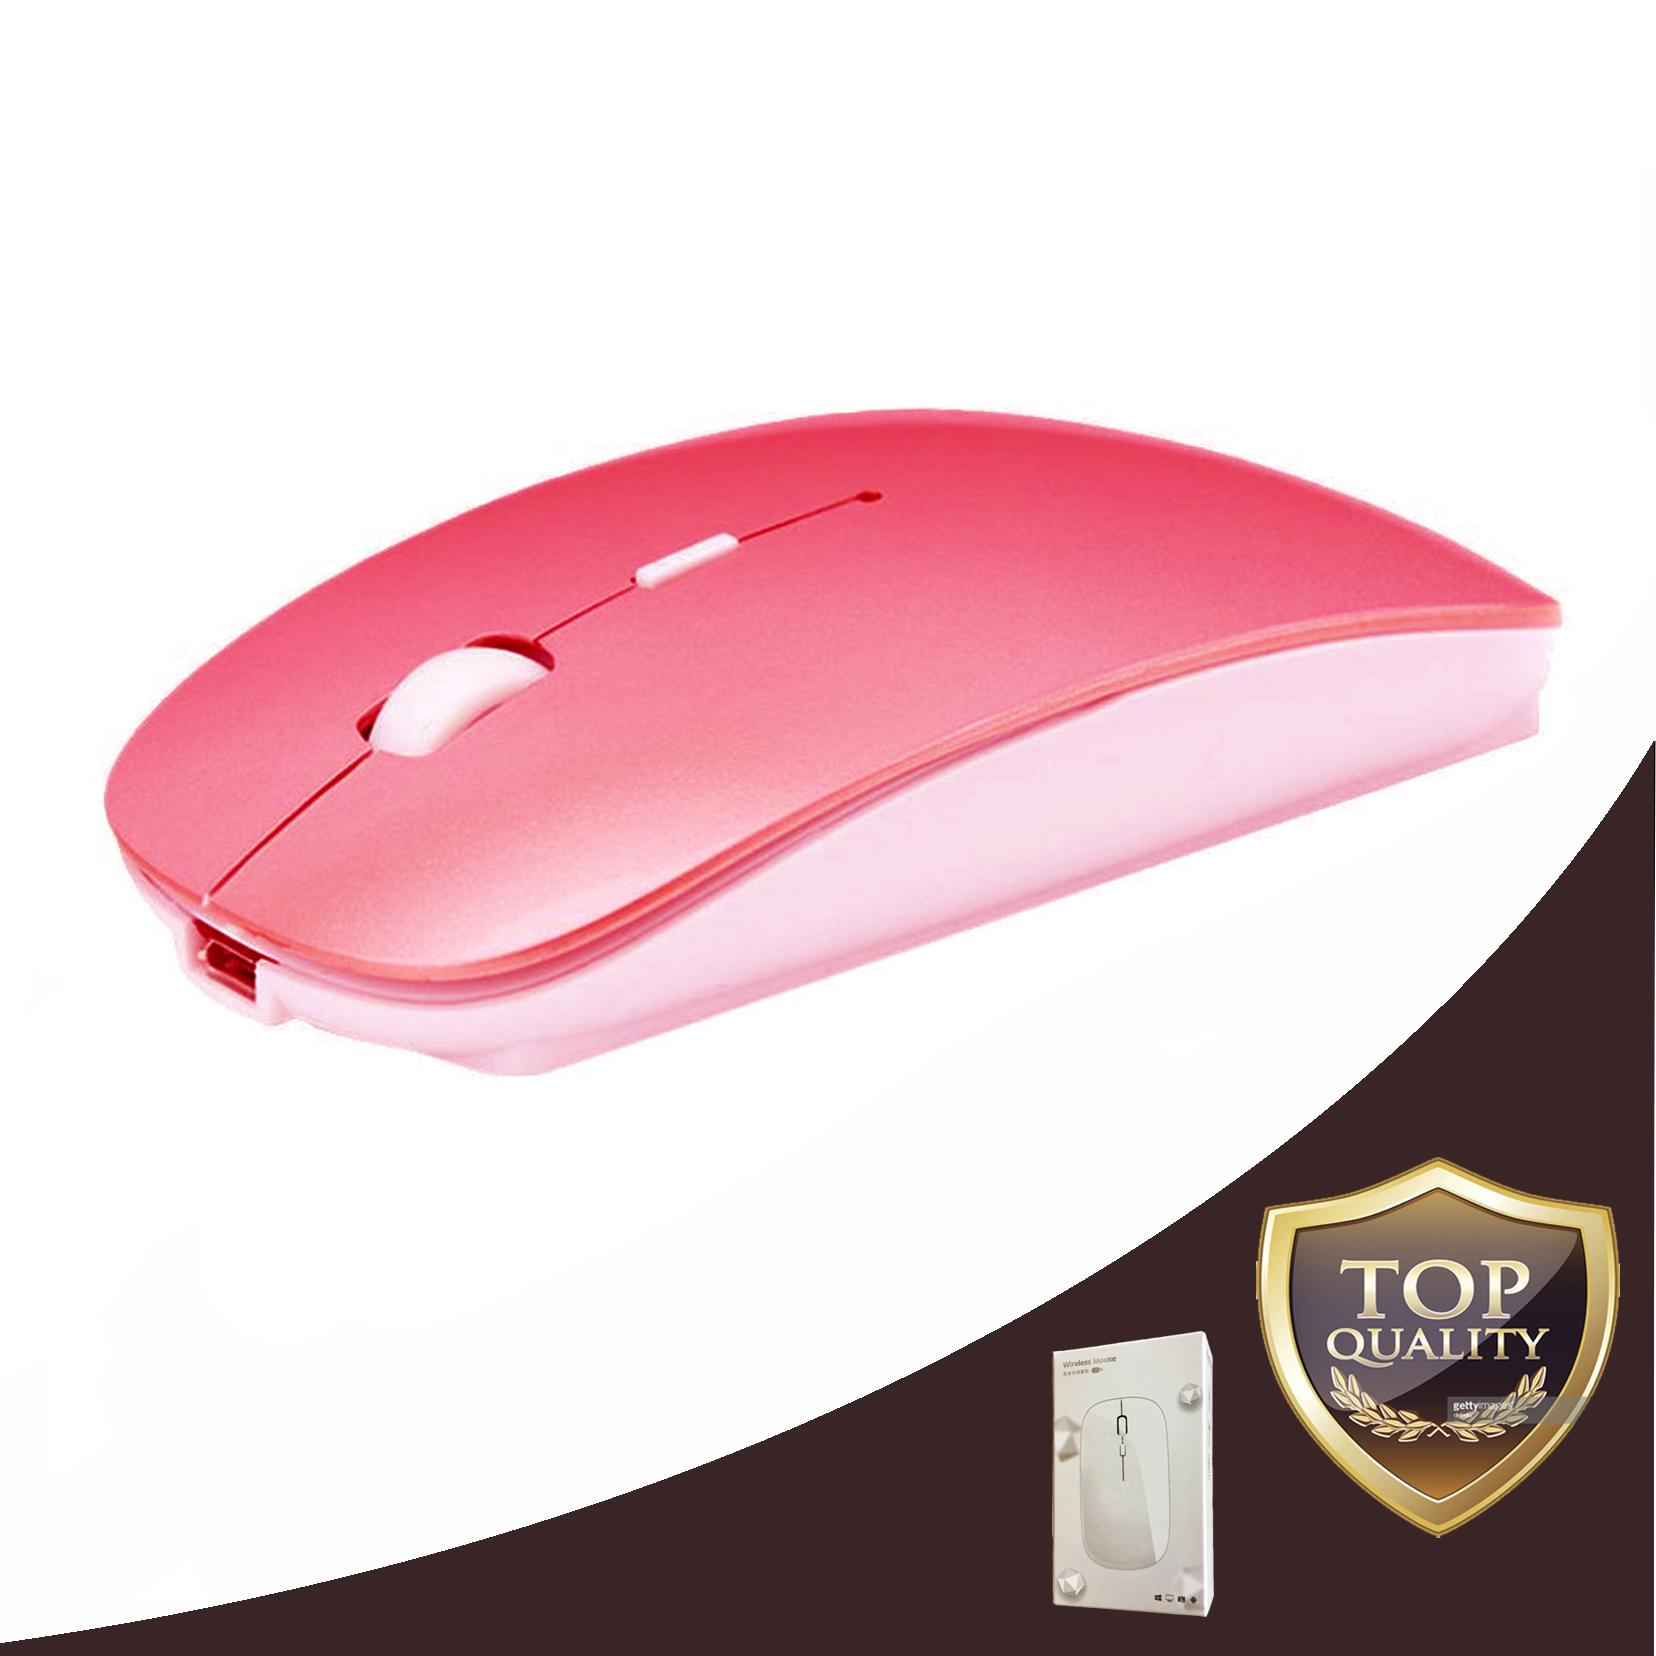 puter Mouse for sale PC Mice prices brands & specs in Philippines